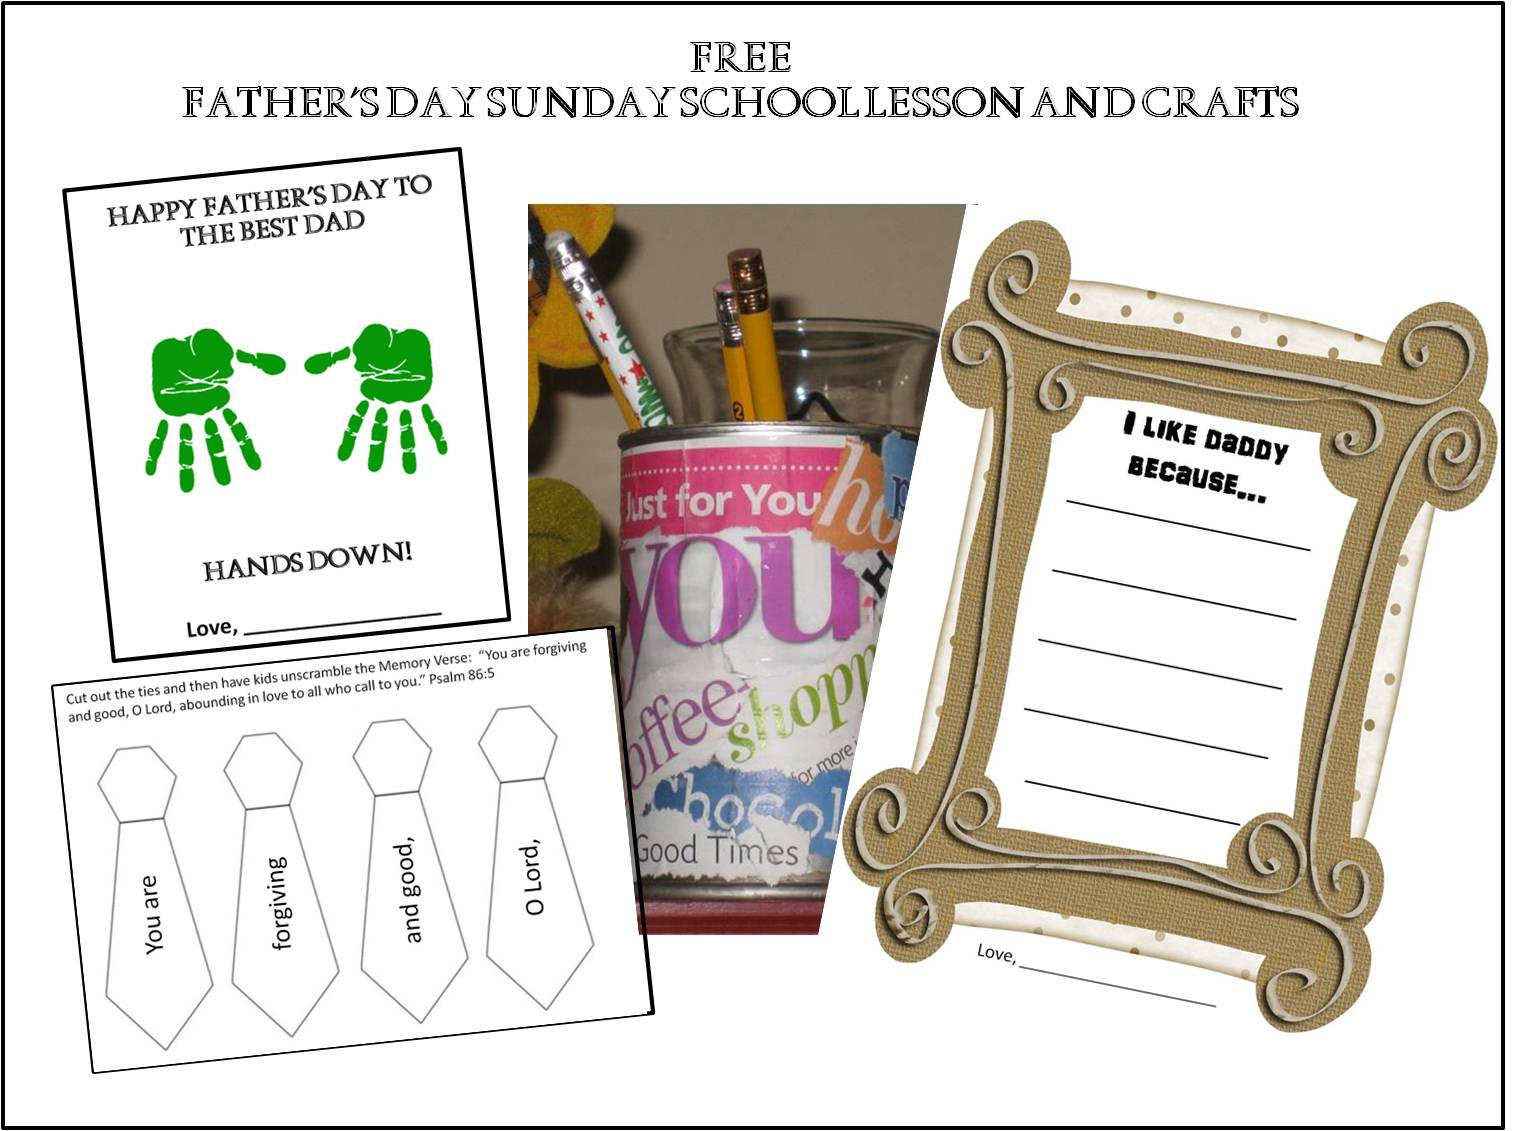 Free Fathers Day Sunday School Lesson Kathy Hutto